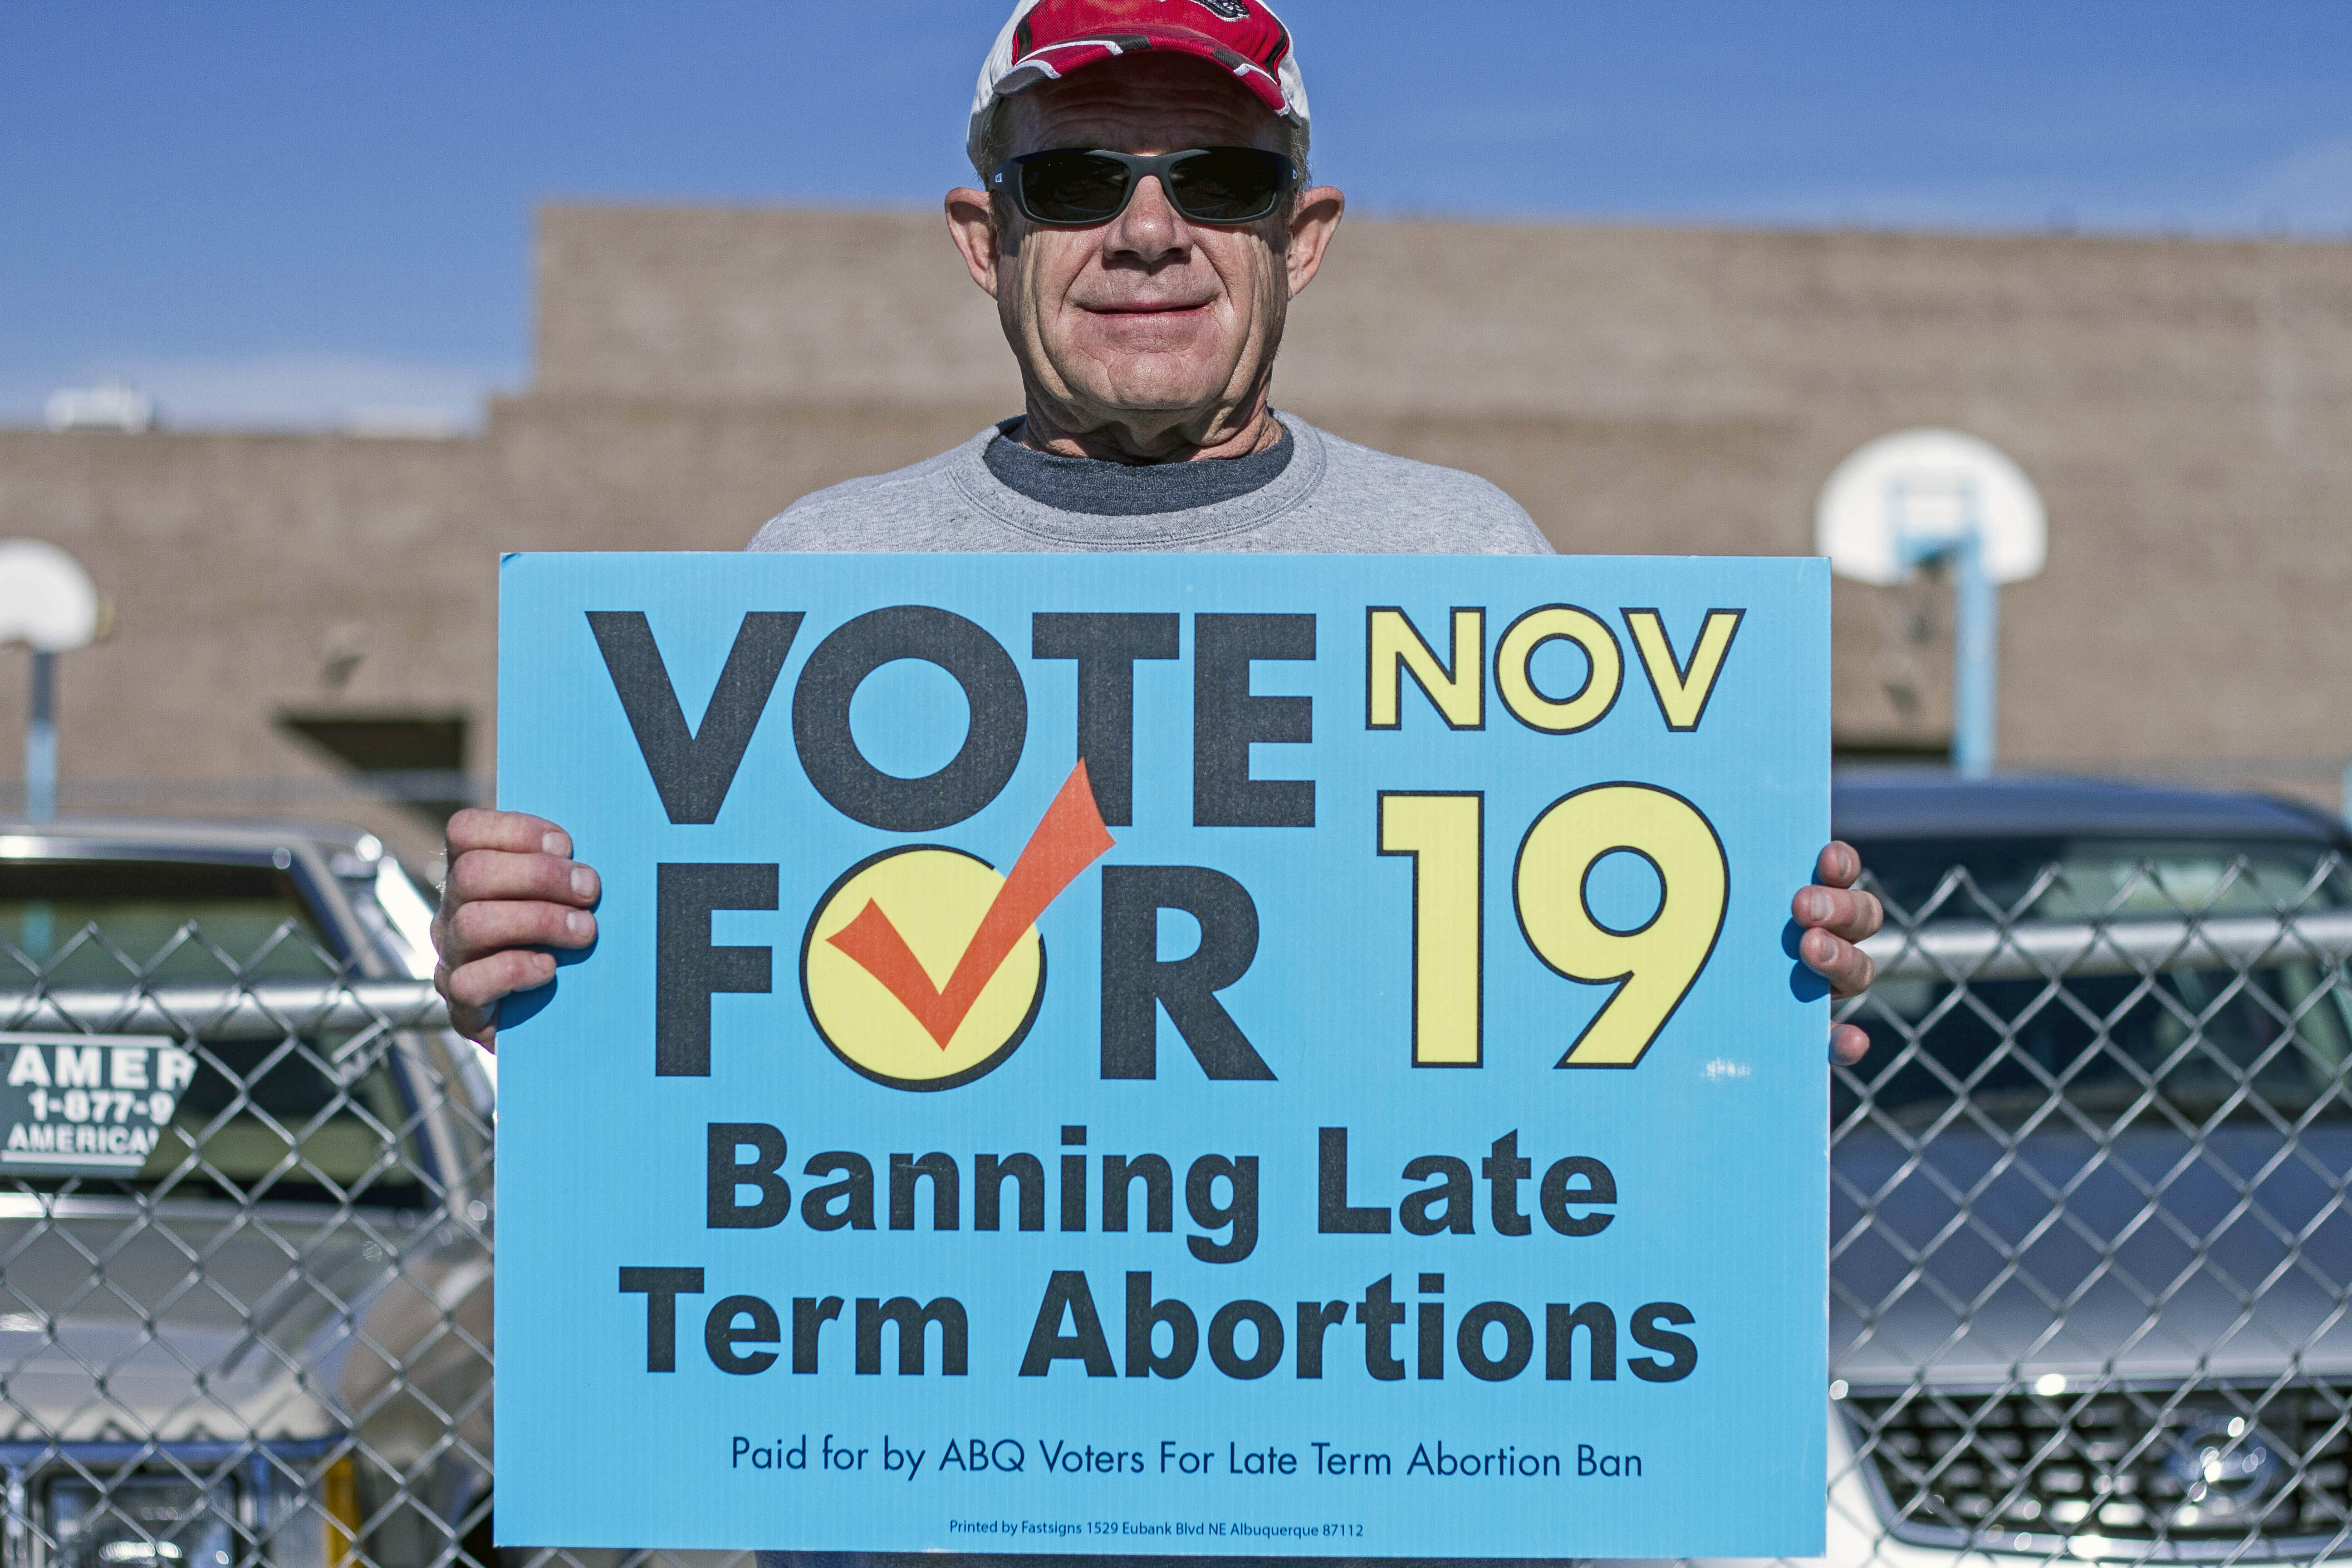 How could anyone ever perform a full-term abortion?